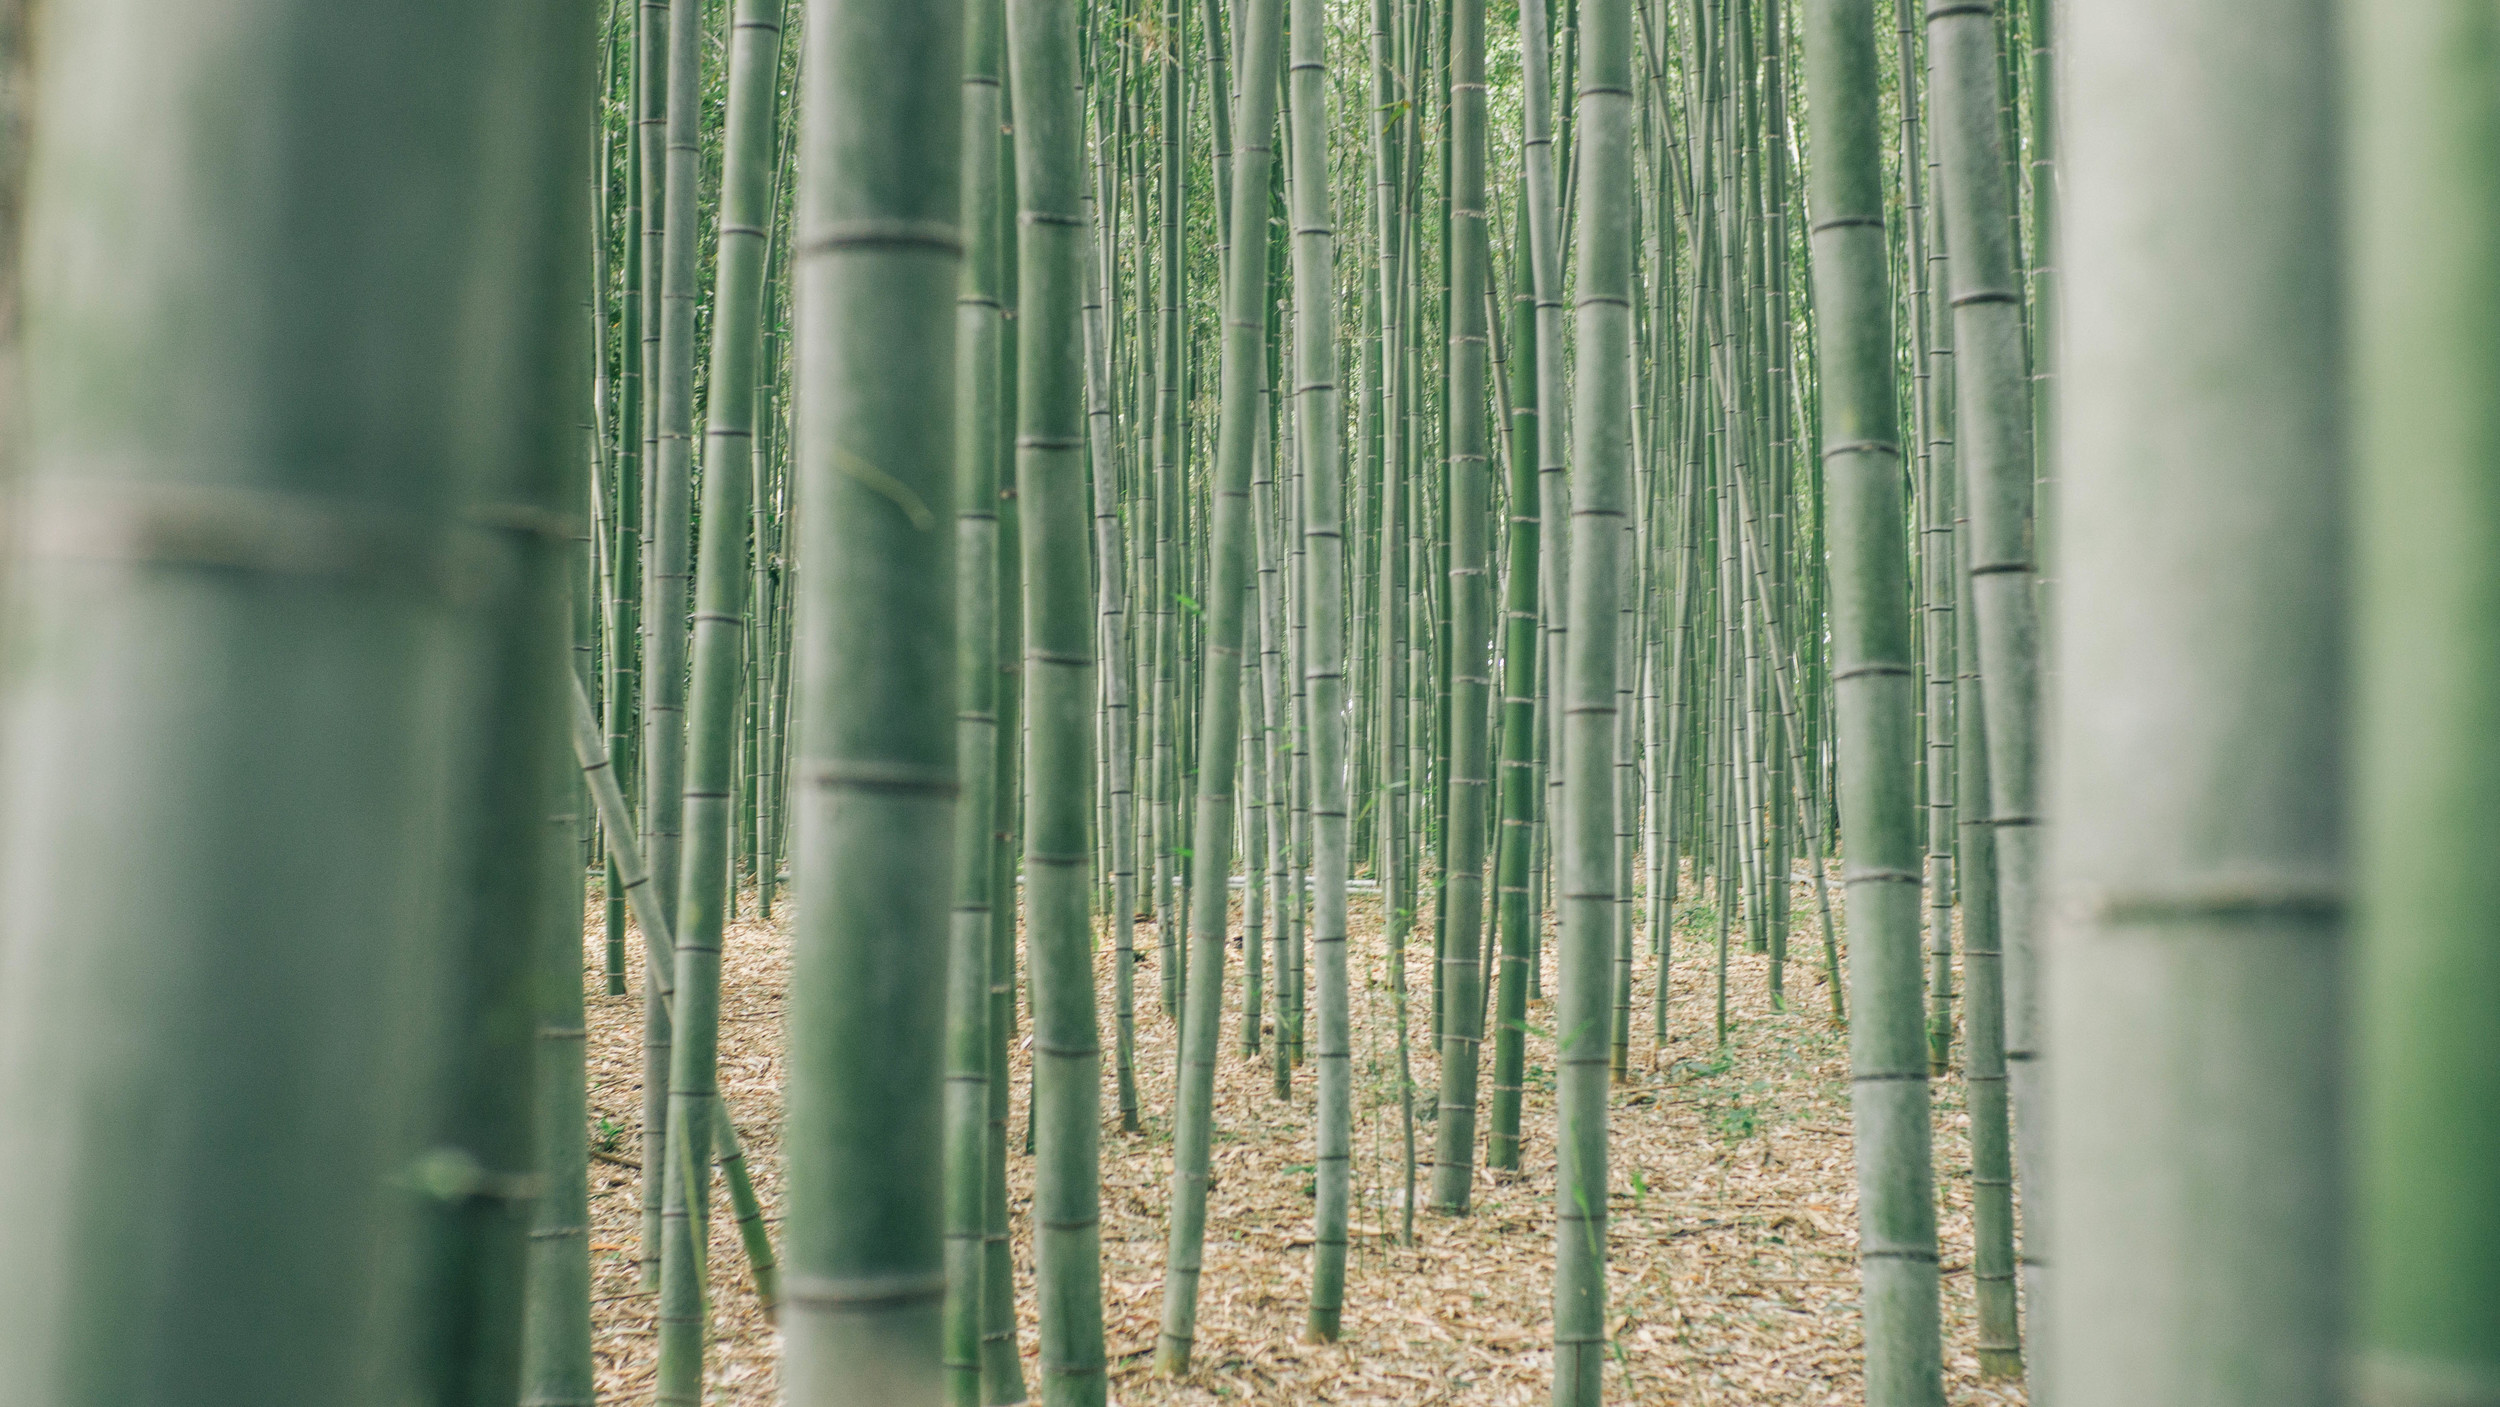 Arashiyama, the bamboo forest in the outskirts of Kyoto. A beautiful and enchanting place! Best to get there early to avoid the crowds (unlike what we did). We didn't have time to walk all the way through, but I hear there are monkeys at the top!